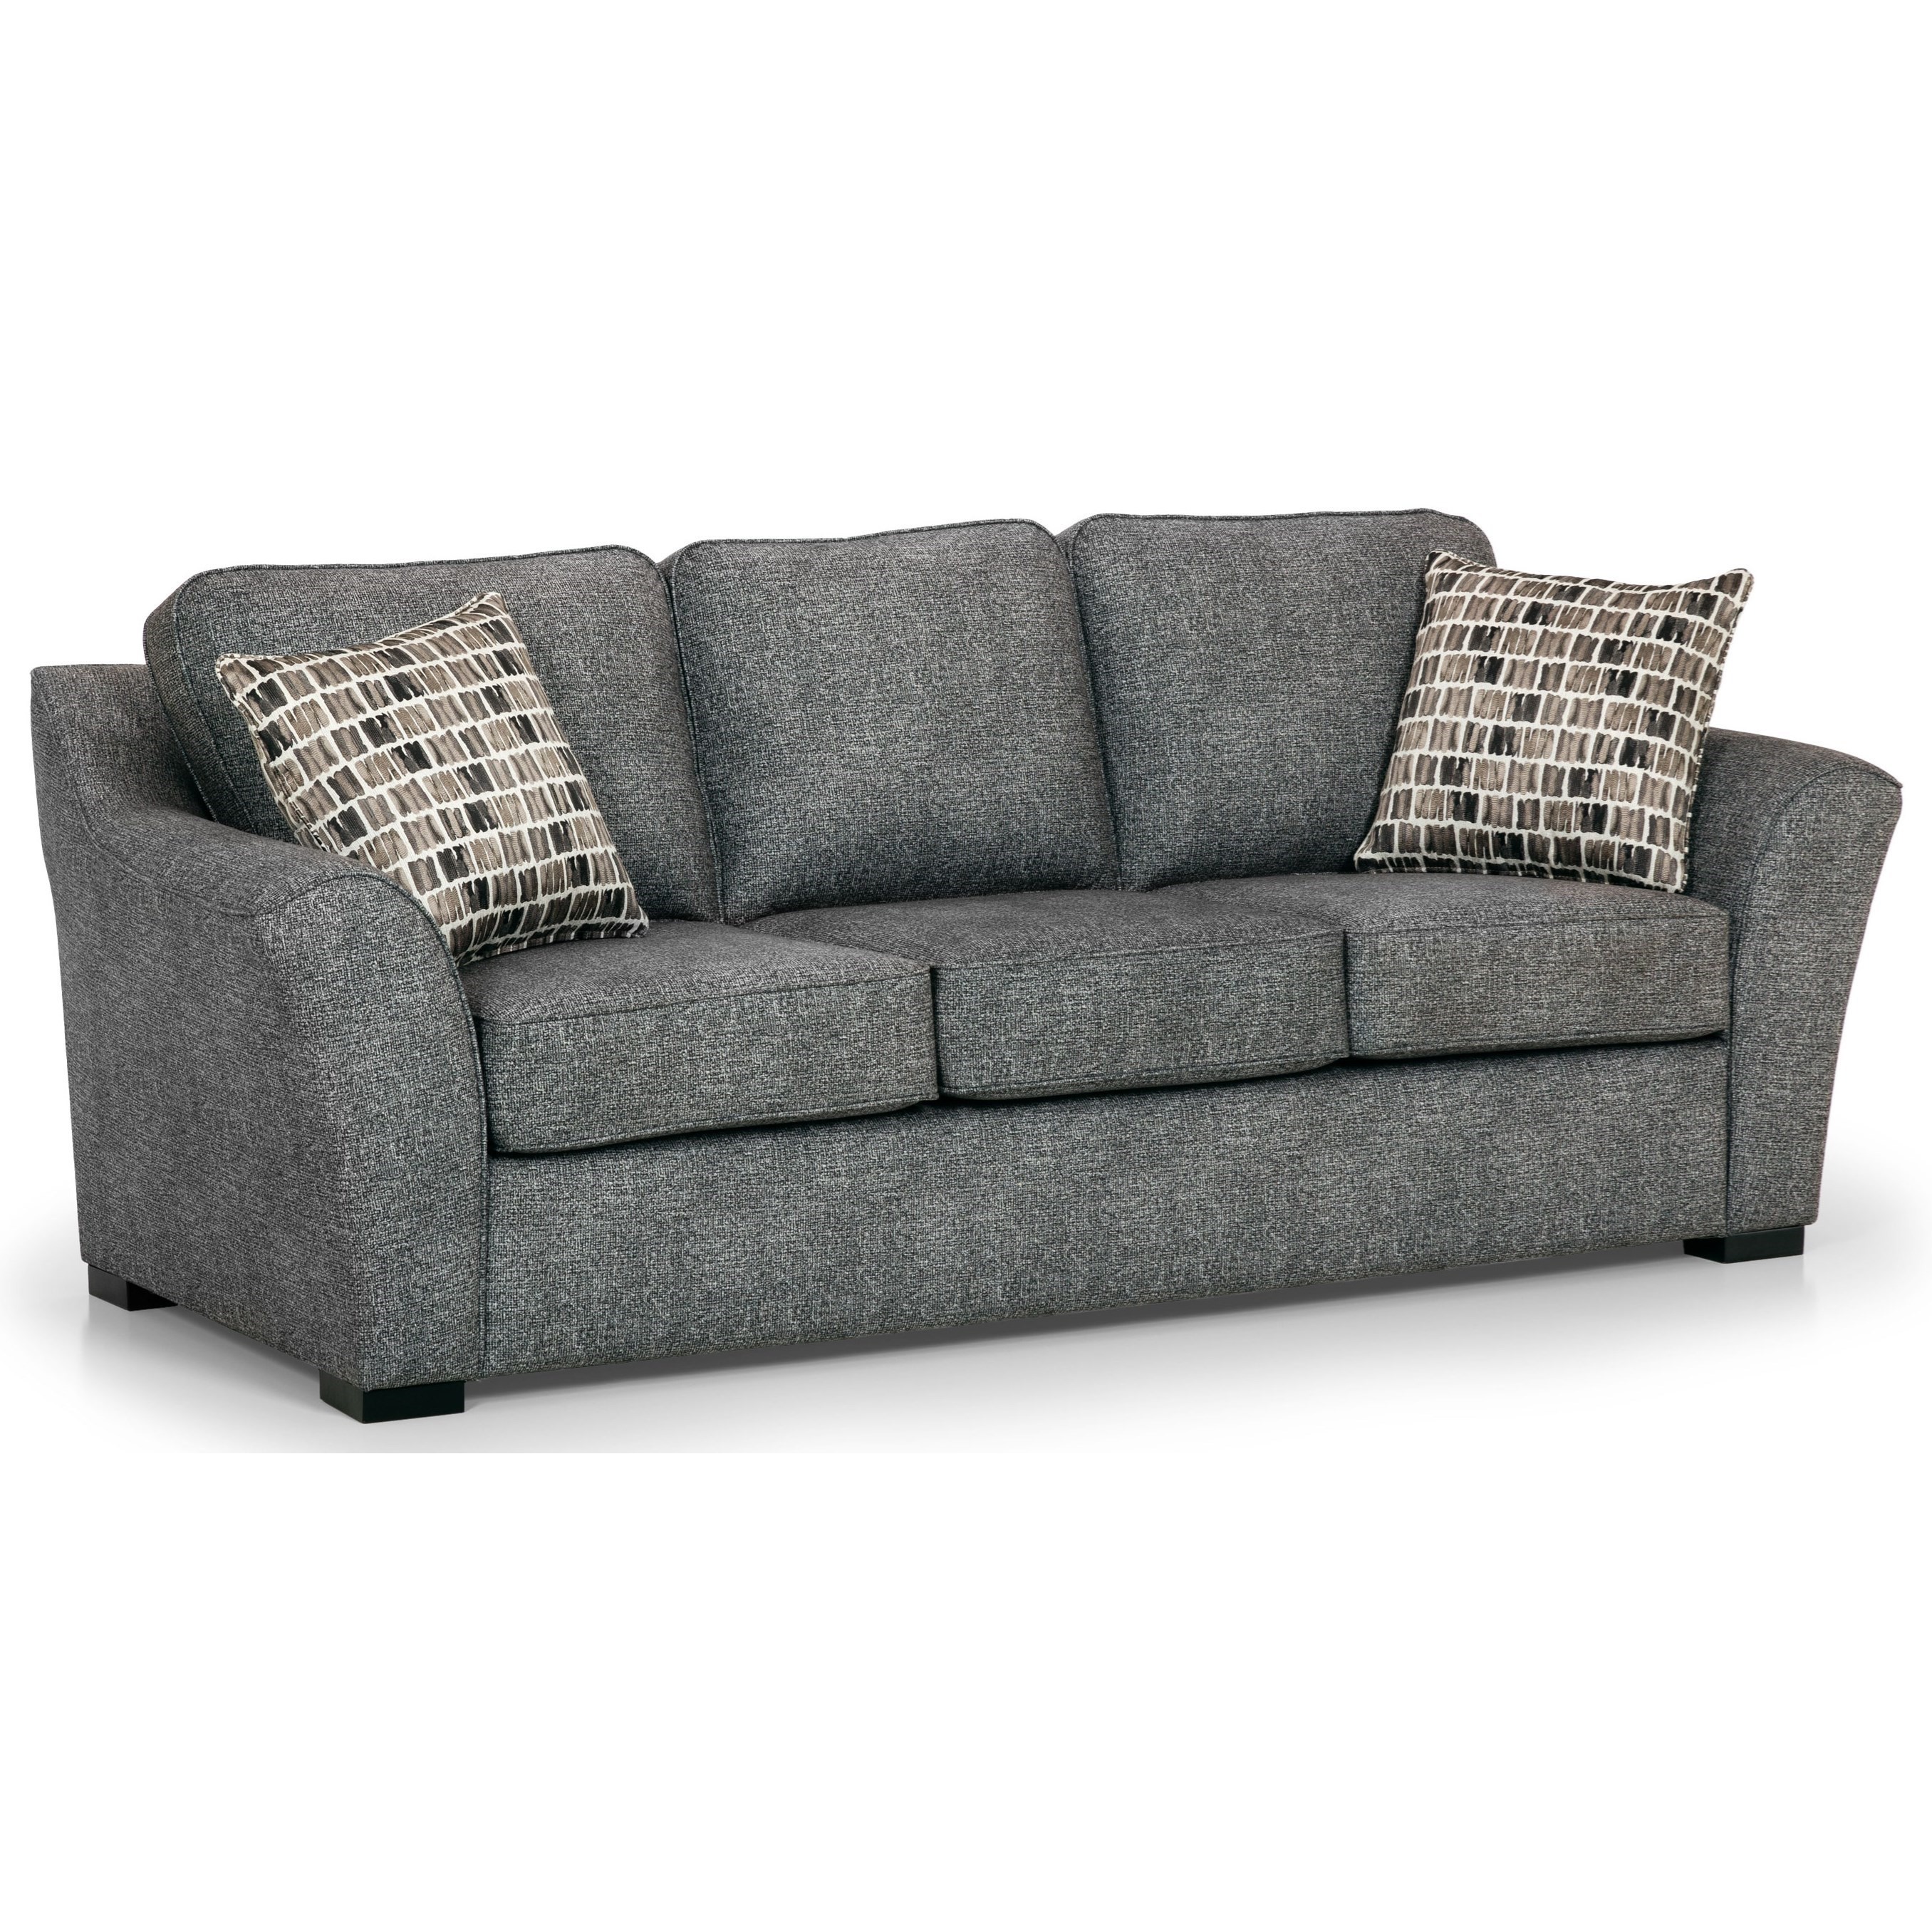 Colby Accent Chair Modern Contemporary Dusk Living Room: Sunset Home 484 Contemporary Sofa With Flared Arms